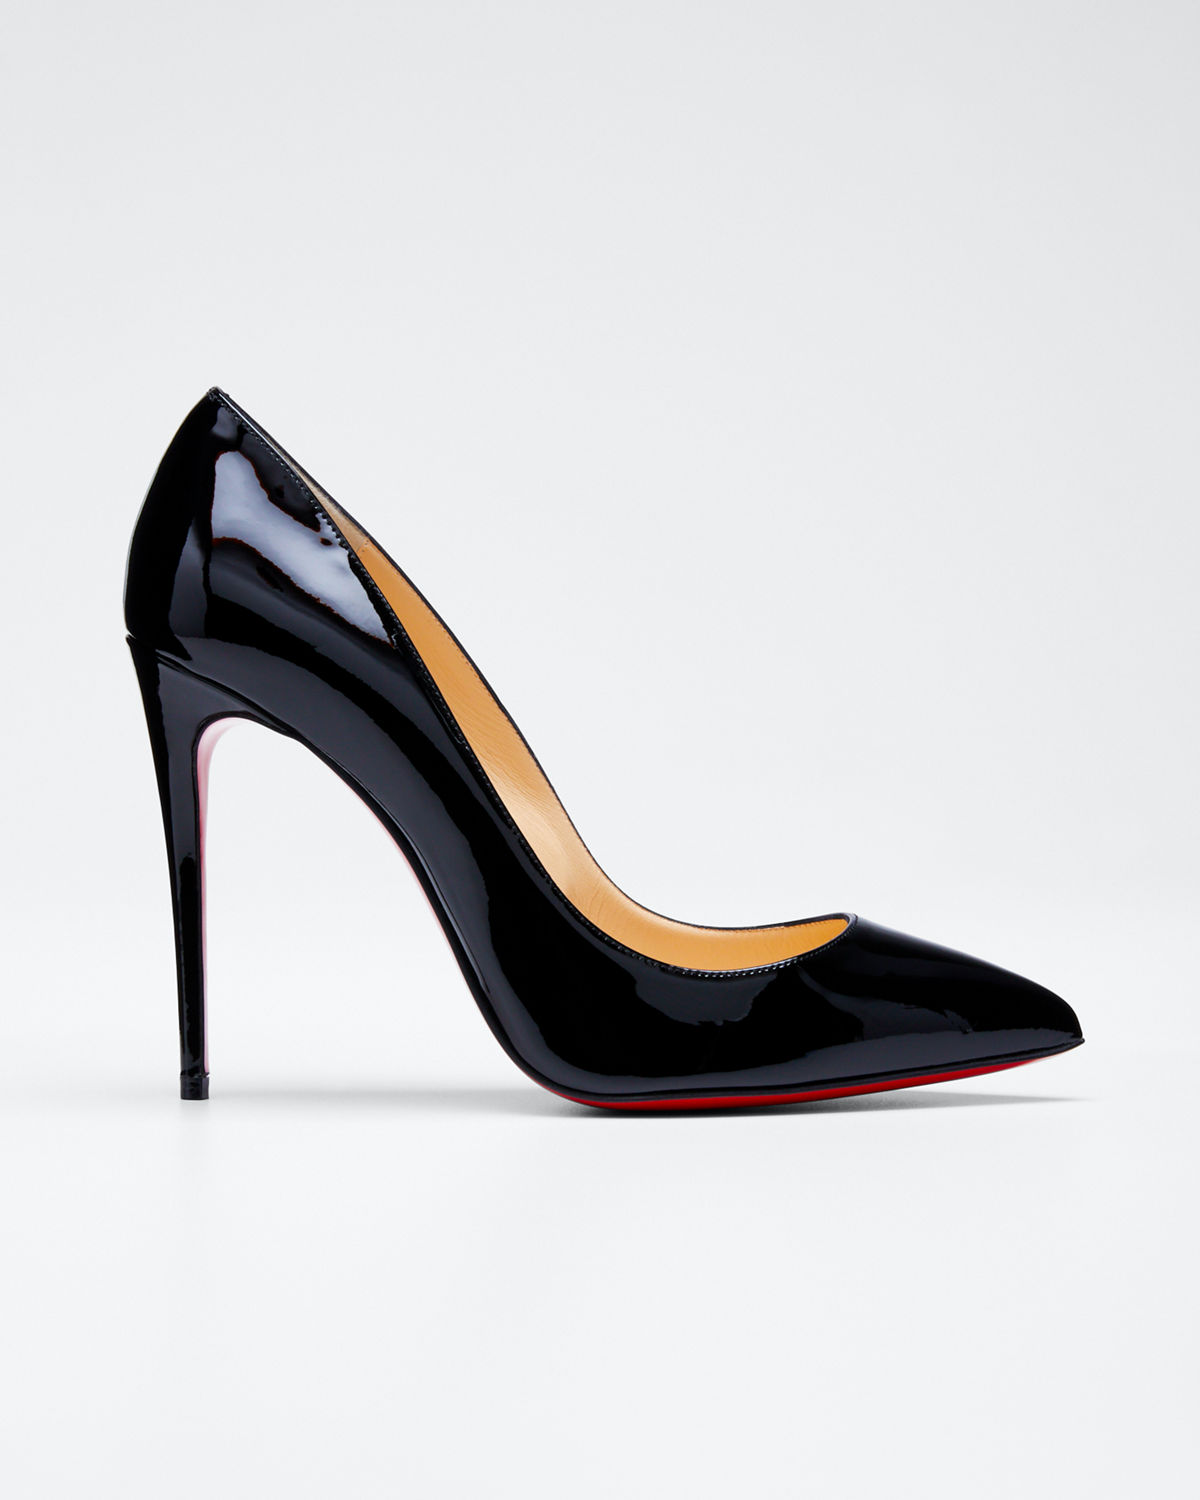 reputable site c8e38 4f0f4 Pigalle Follies Patent Pointed-Toe Red Sole Pump